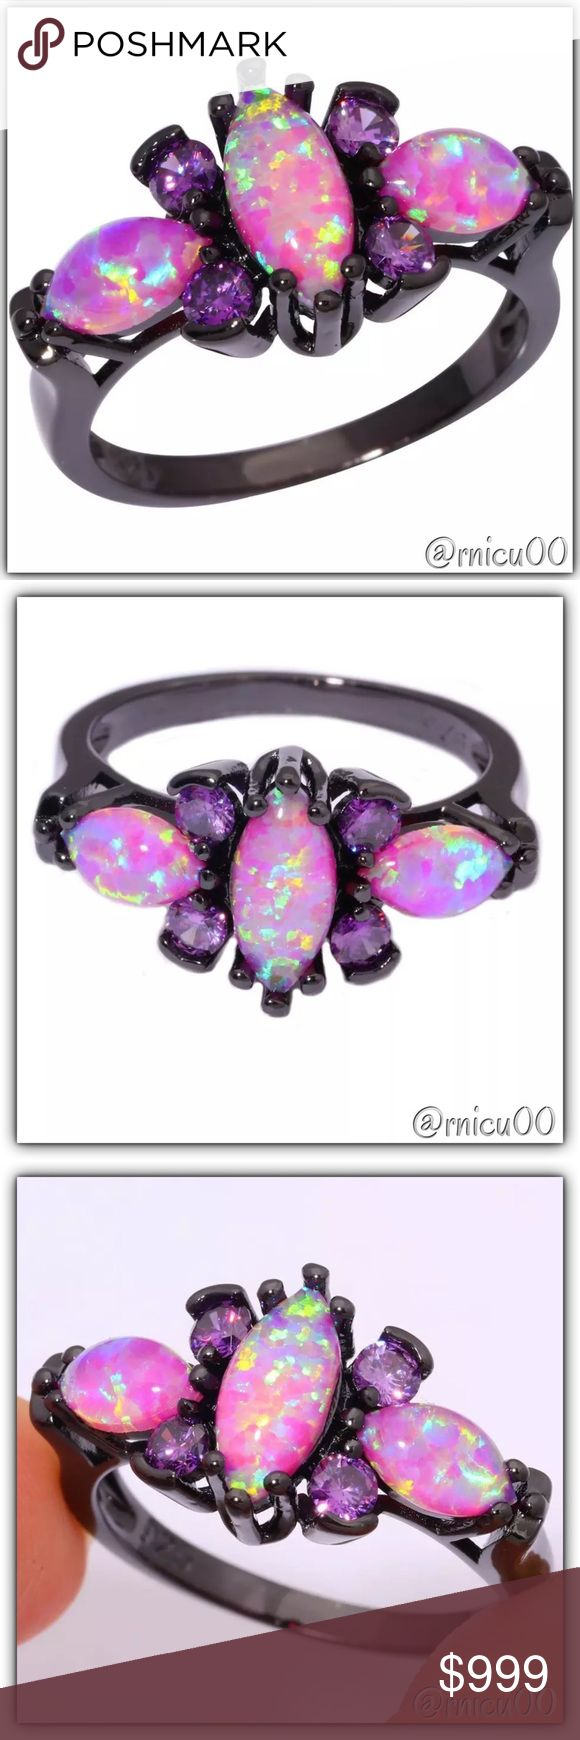 Coming Soon-Pink Fire Opal Amethyst & Black Gold! Coming Soon! Boutique Jewelry Rings